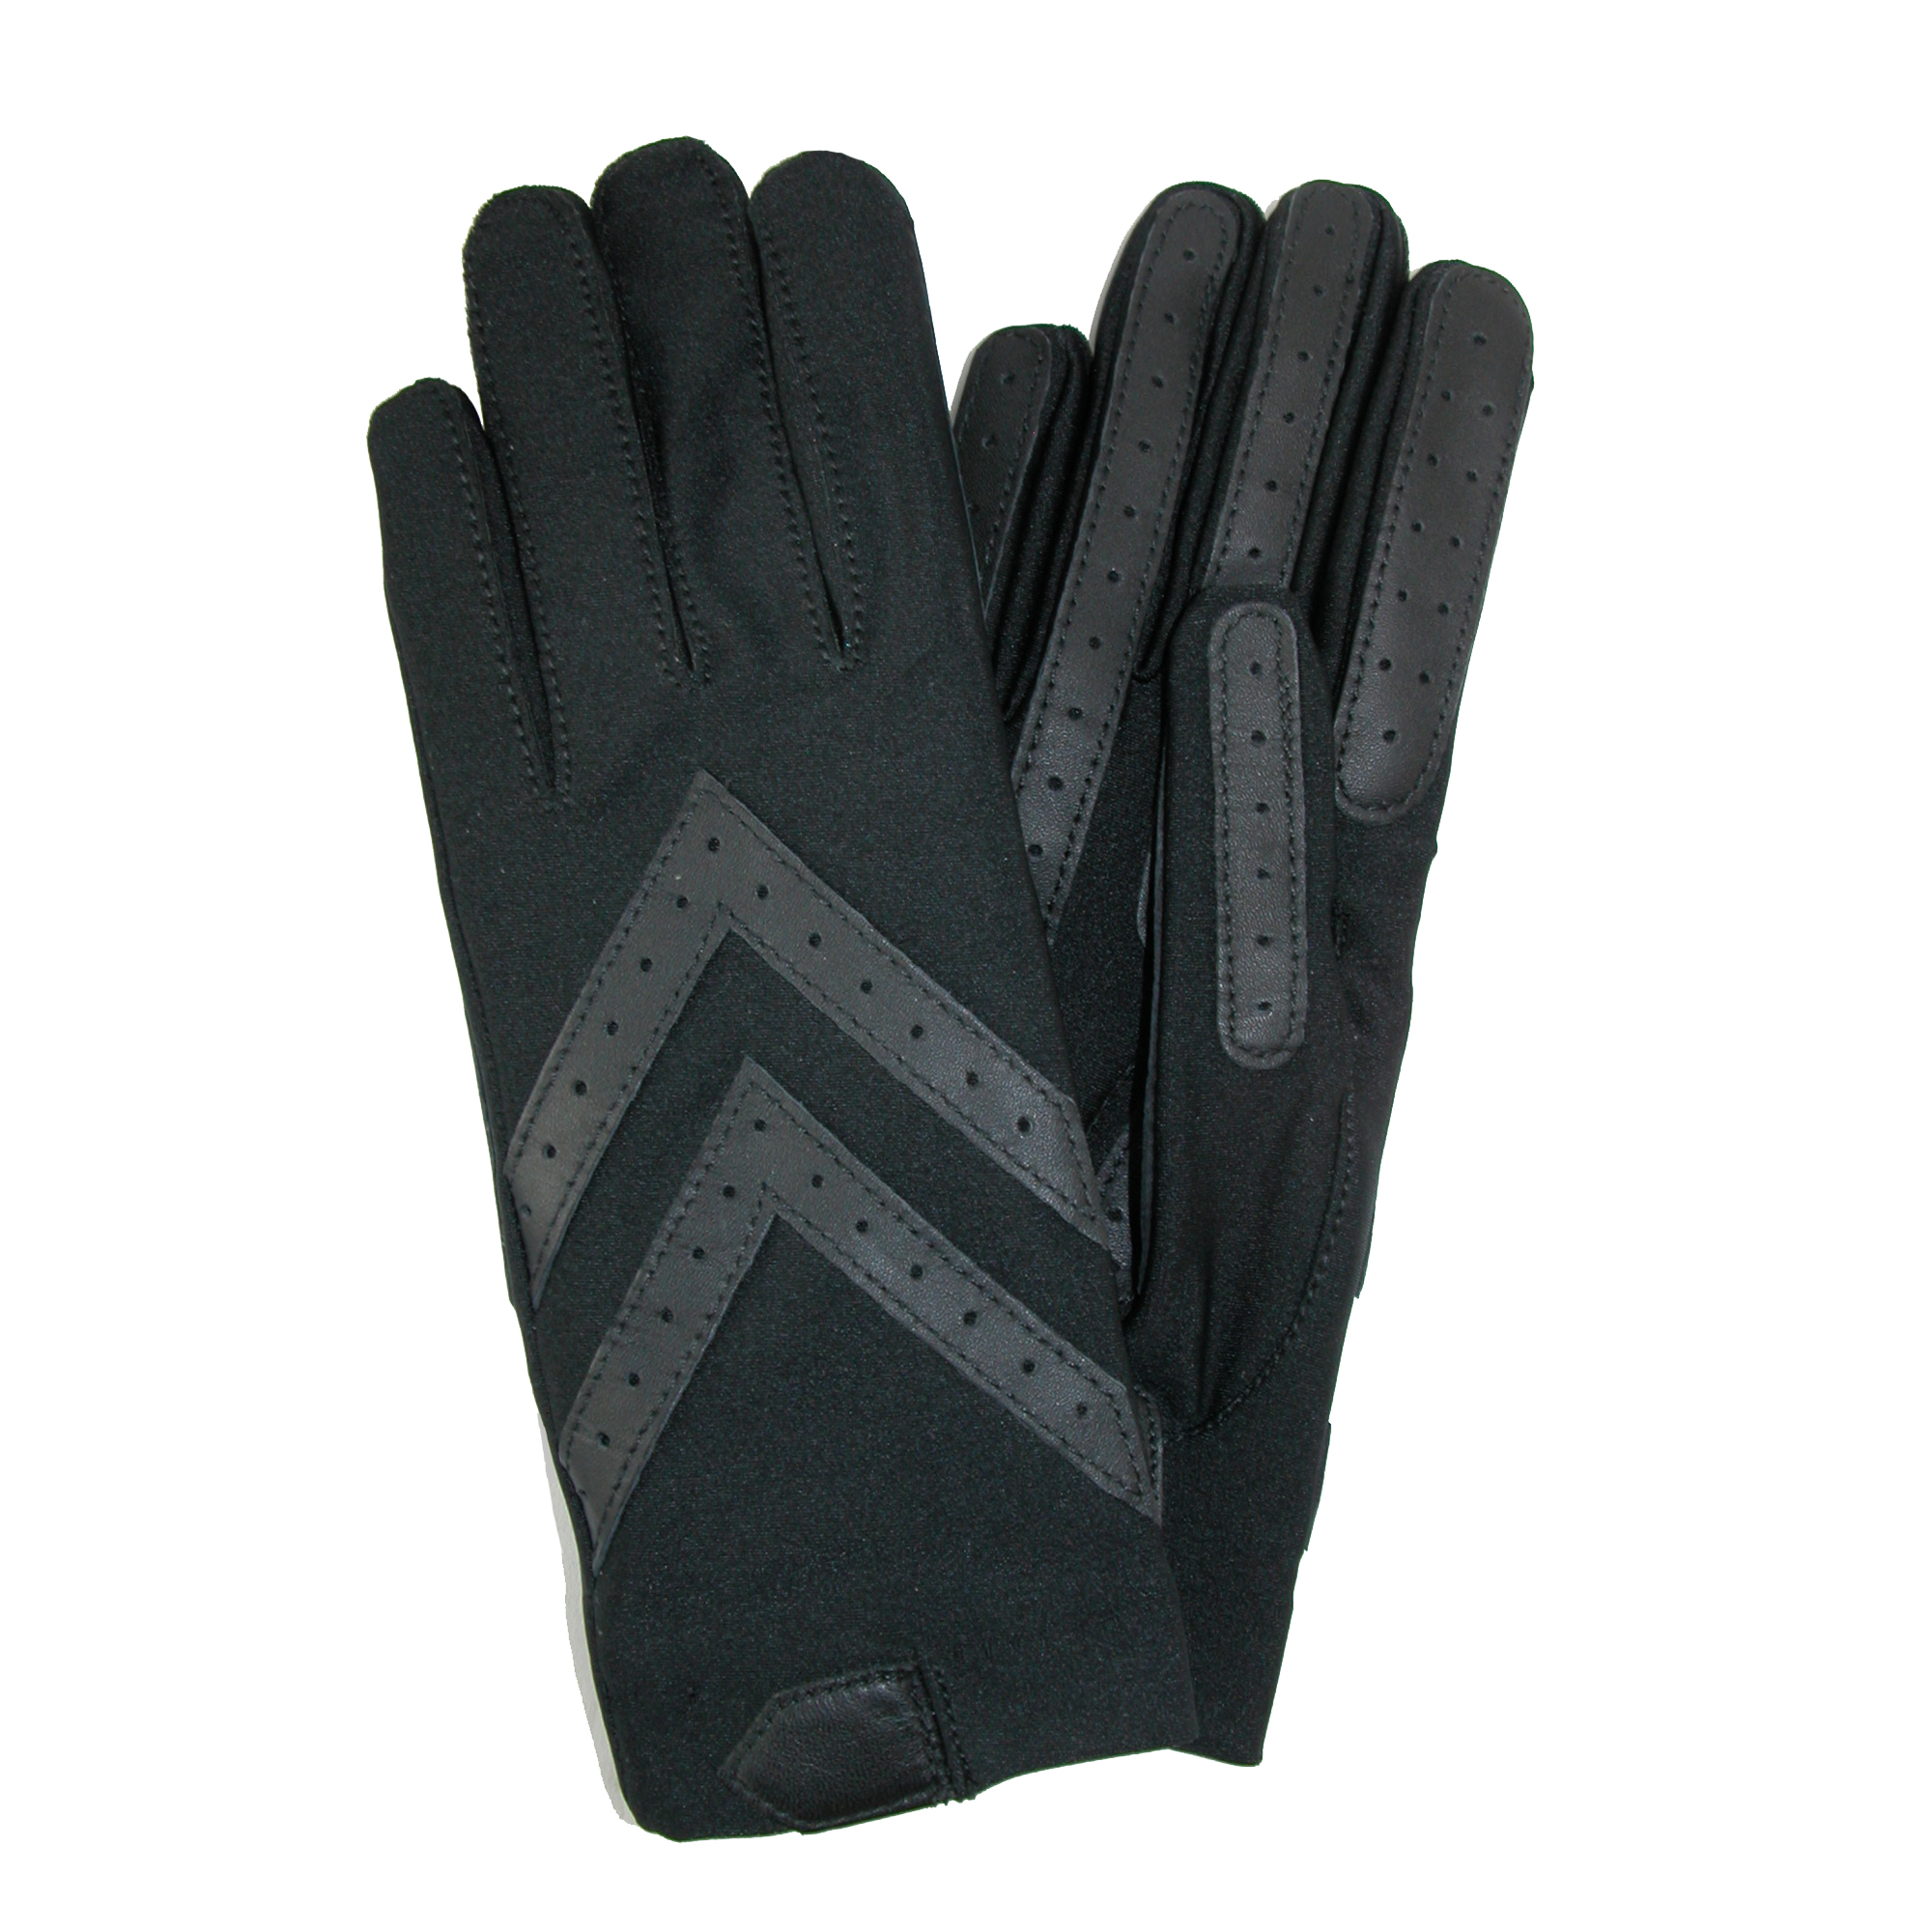 Mens gloves isotoner - Mens Gloves Isotoner 10